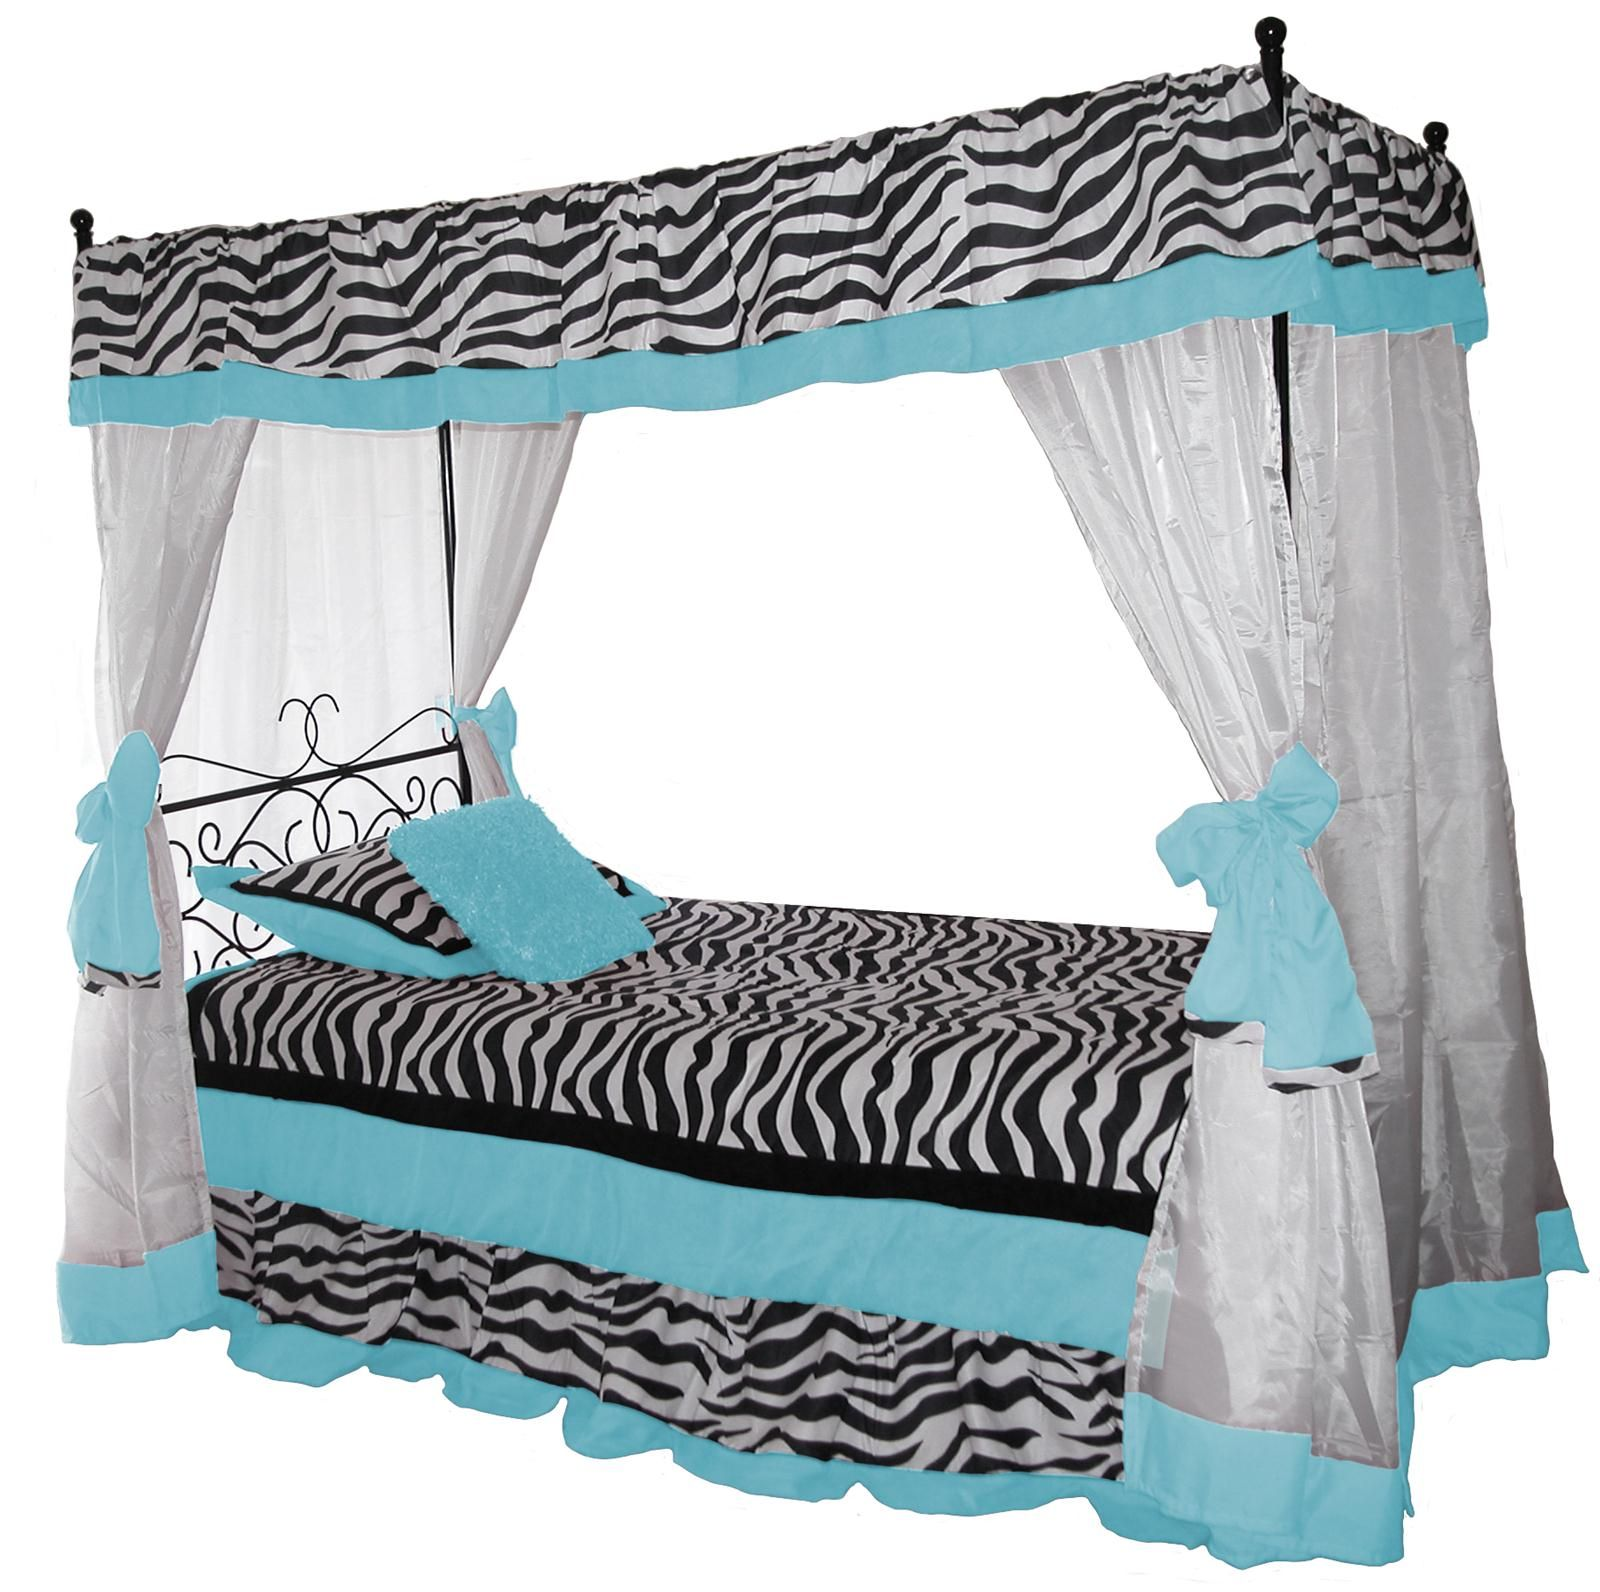 Light blue zebra bedding - 17 Best Cute Canopy Tops For Your Canopy Bed Images On Pinterest Girl Bedding Princess Canopy And Canopies